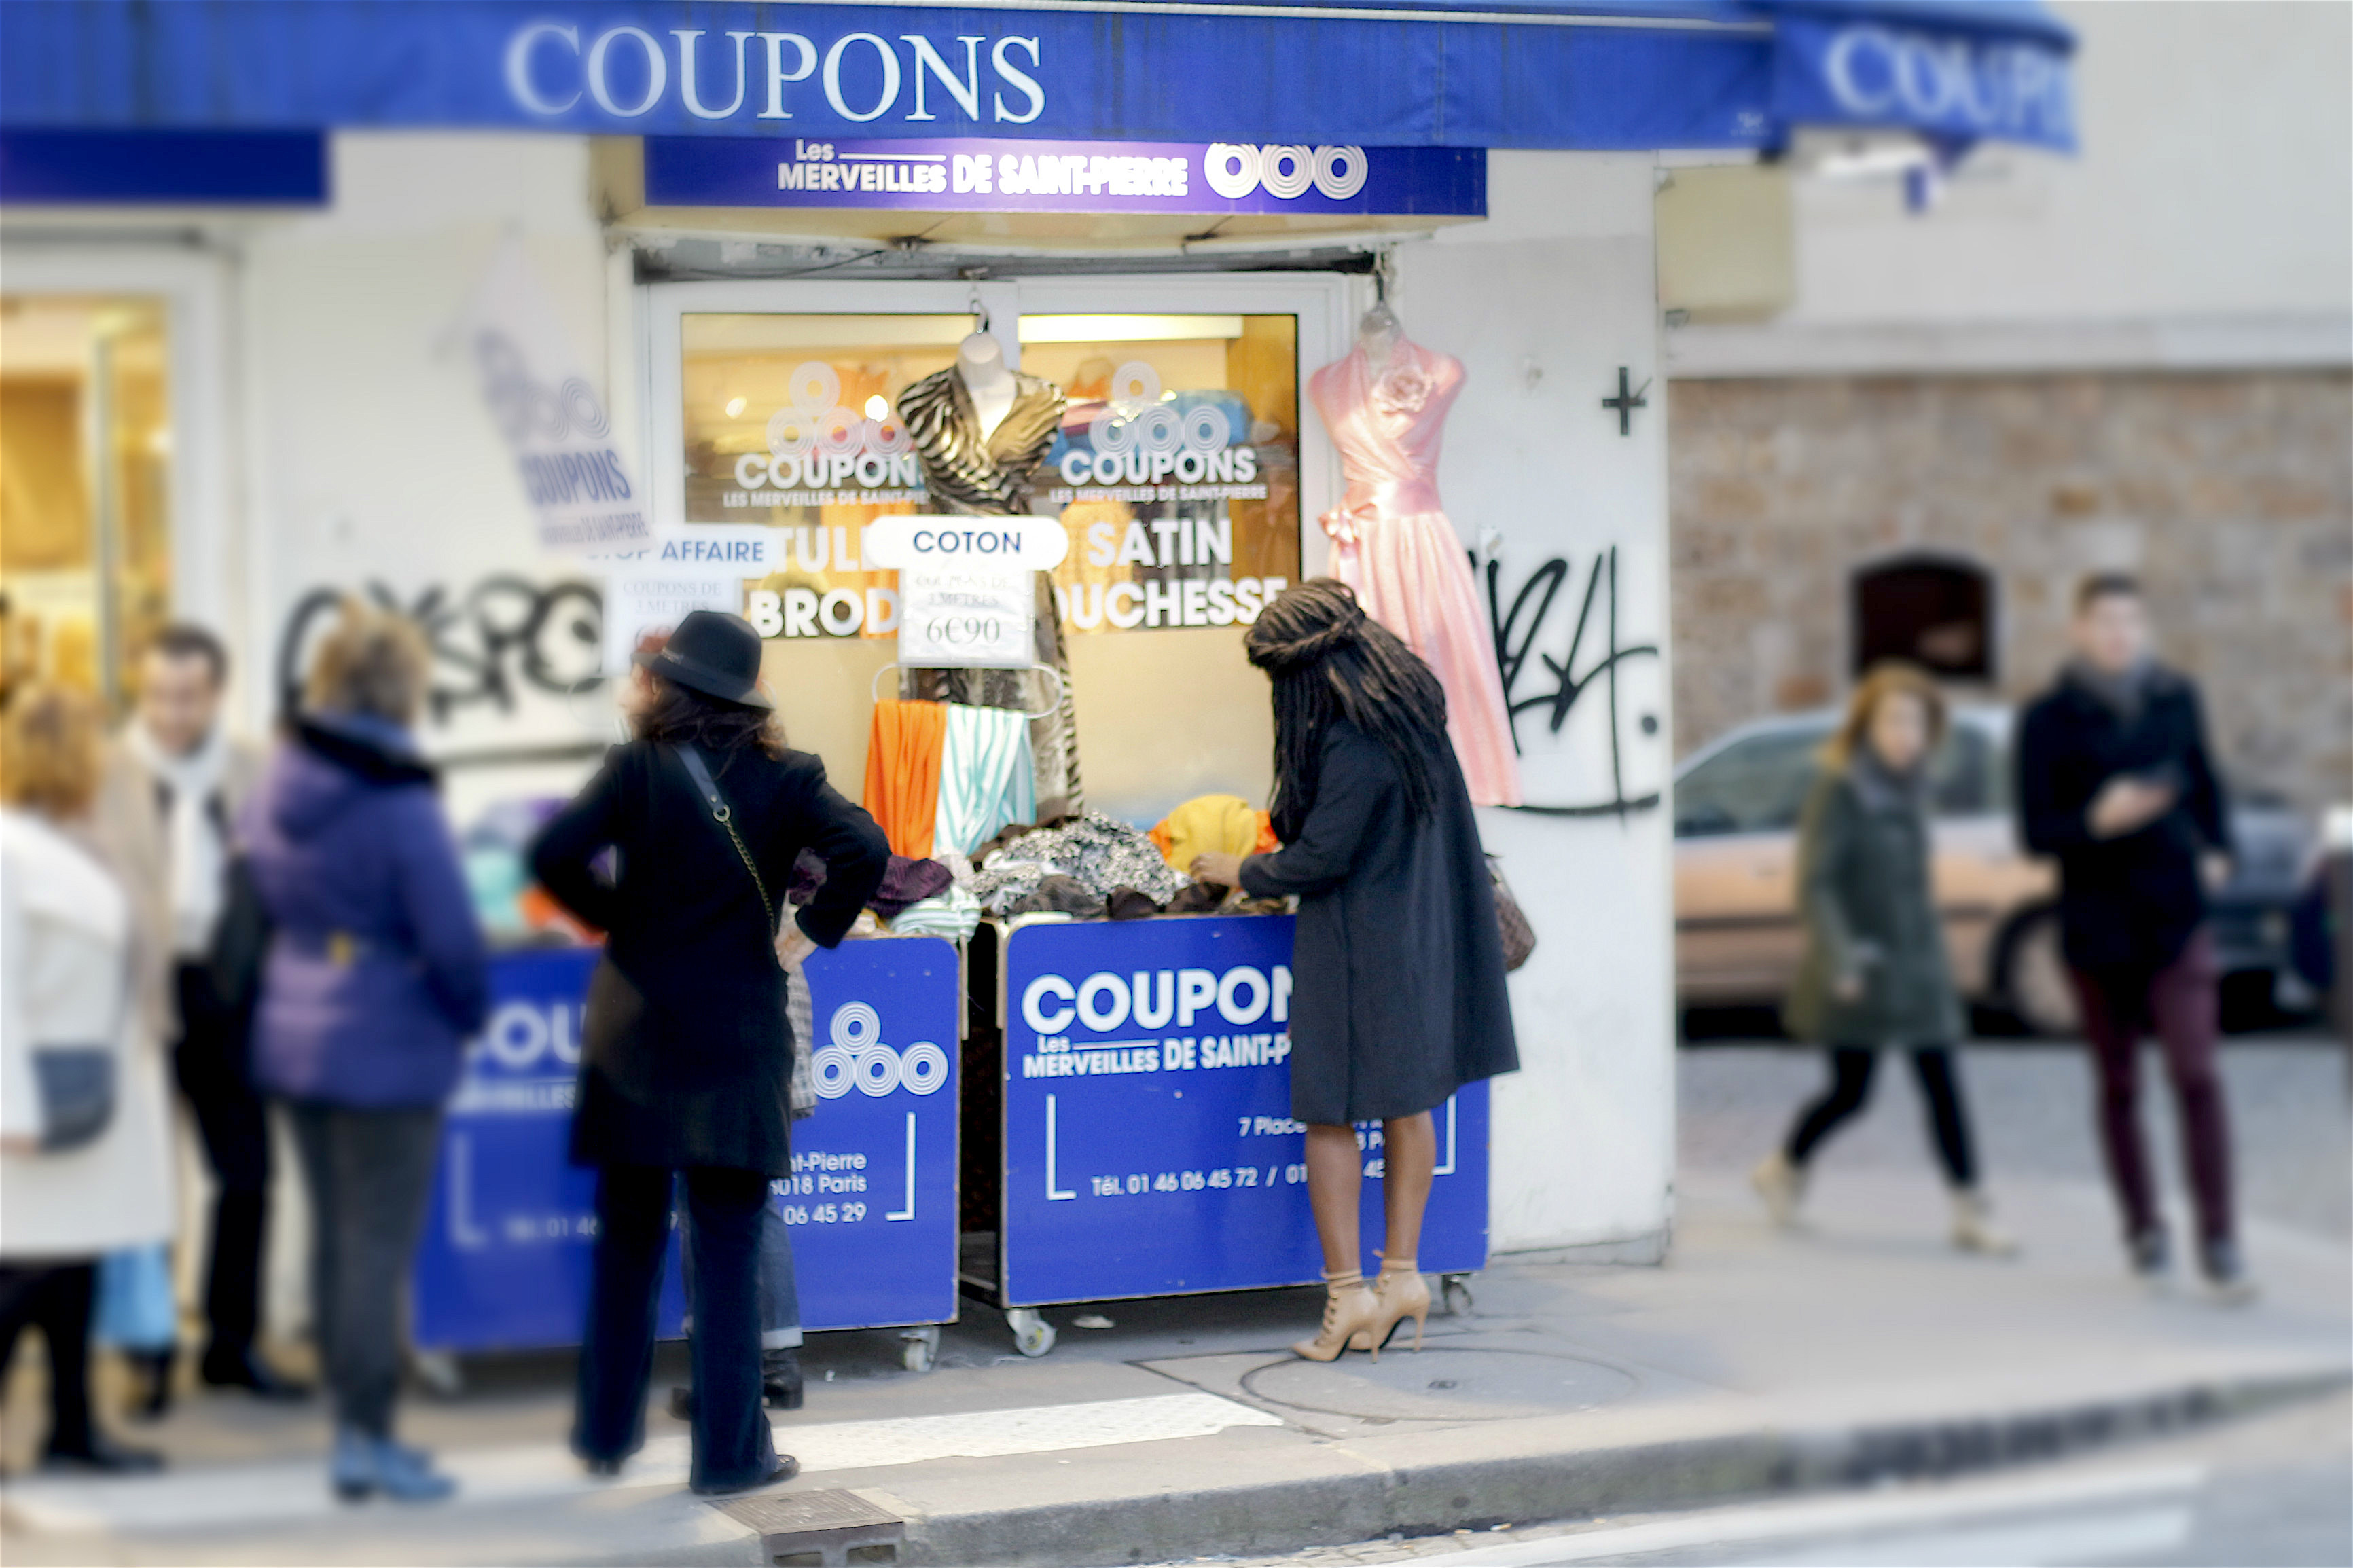 Coupons tissus montmartre